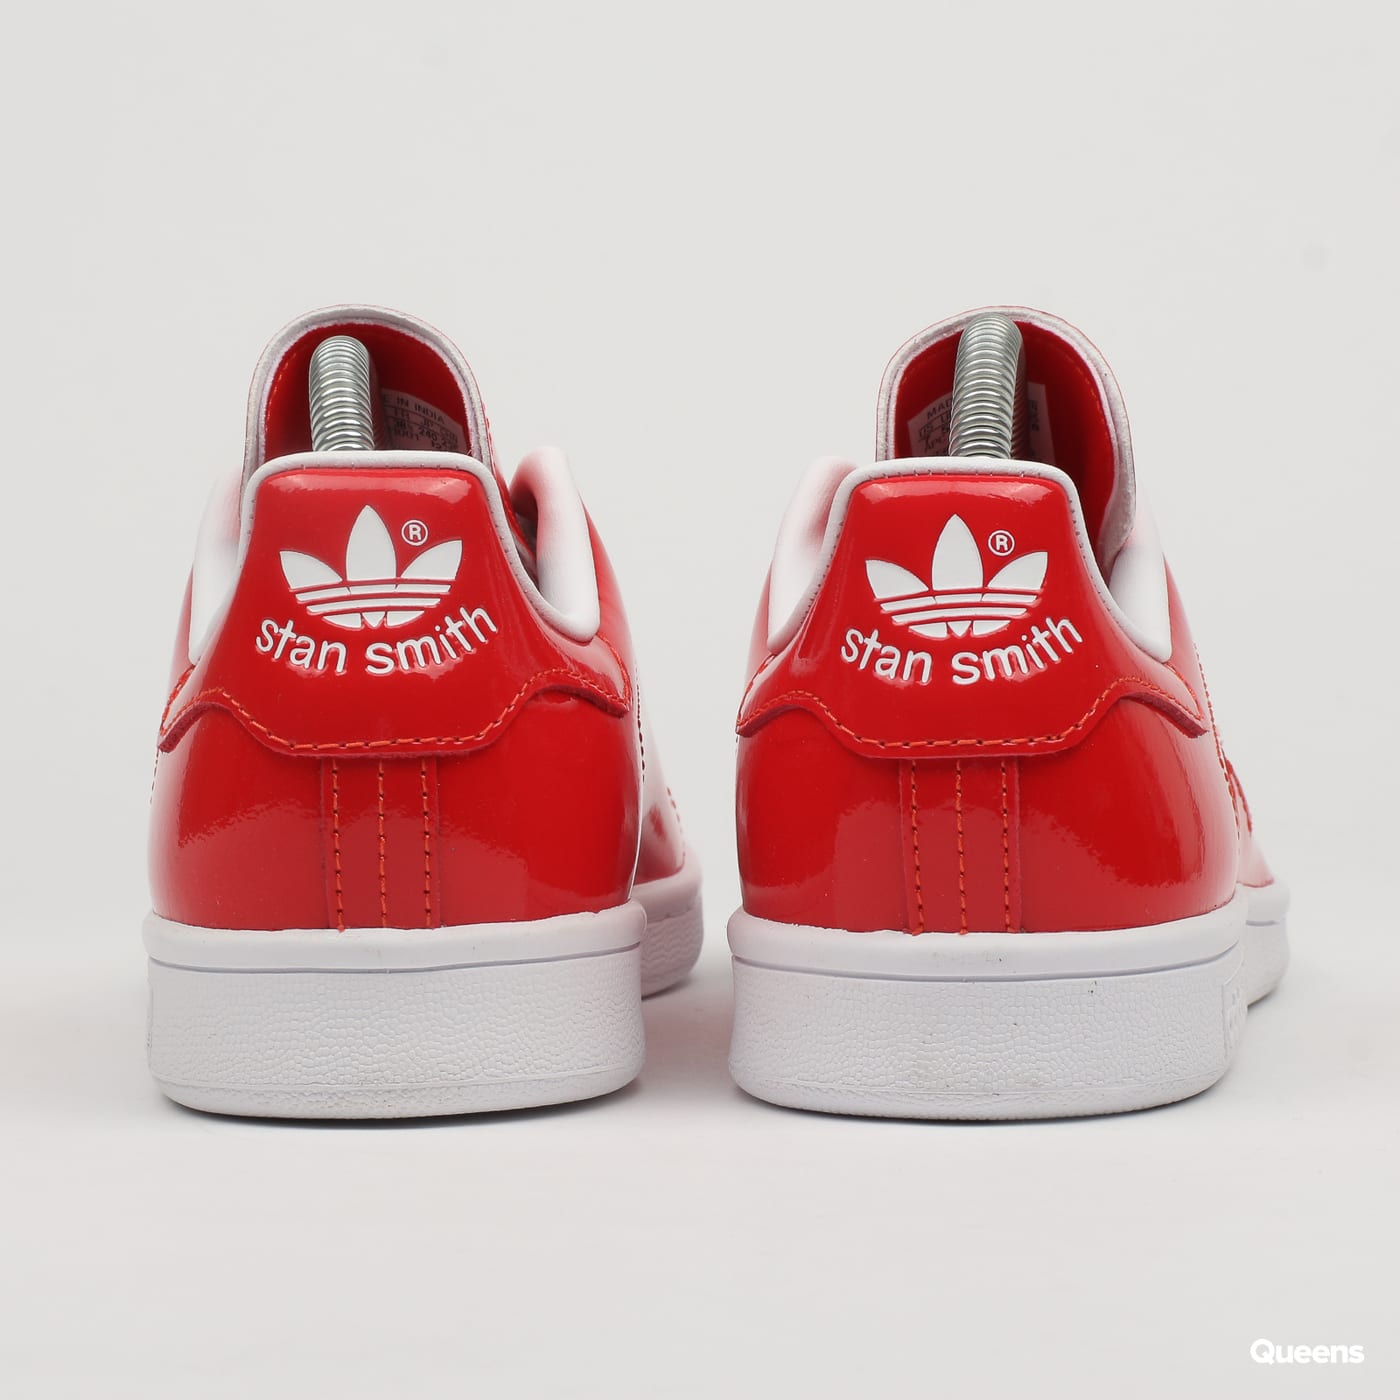 ADIDAS STAN SMITH W actred ftwwht actred US 7.5 (eur 39